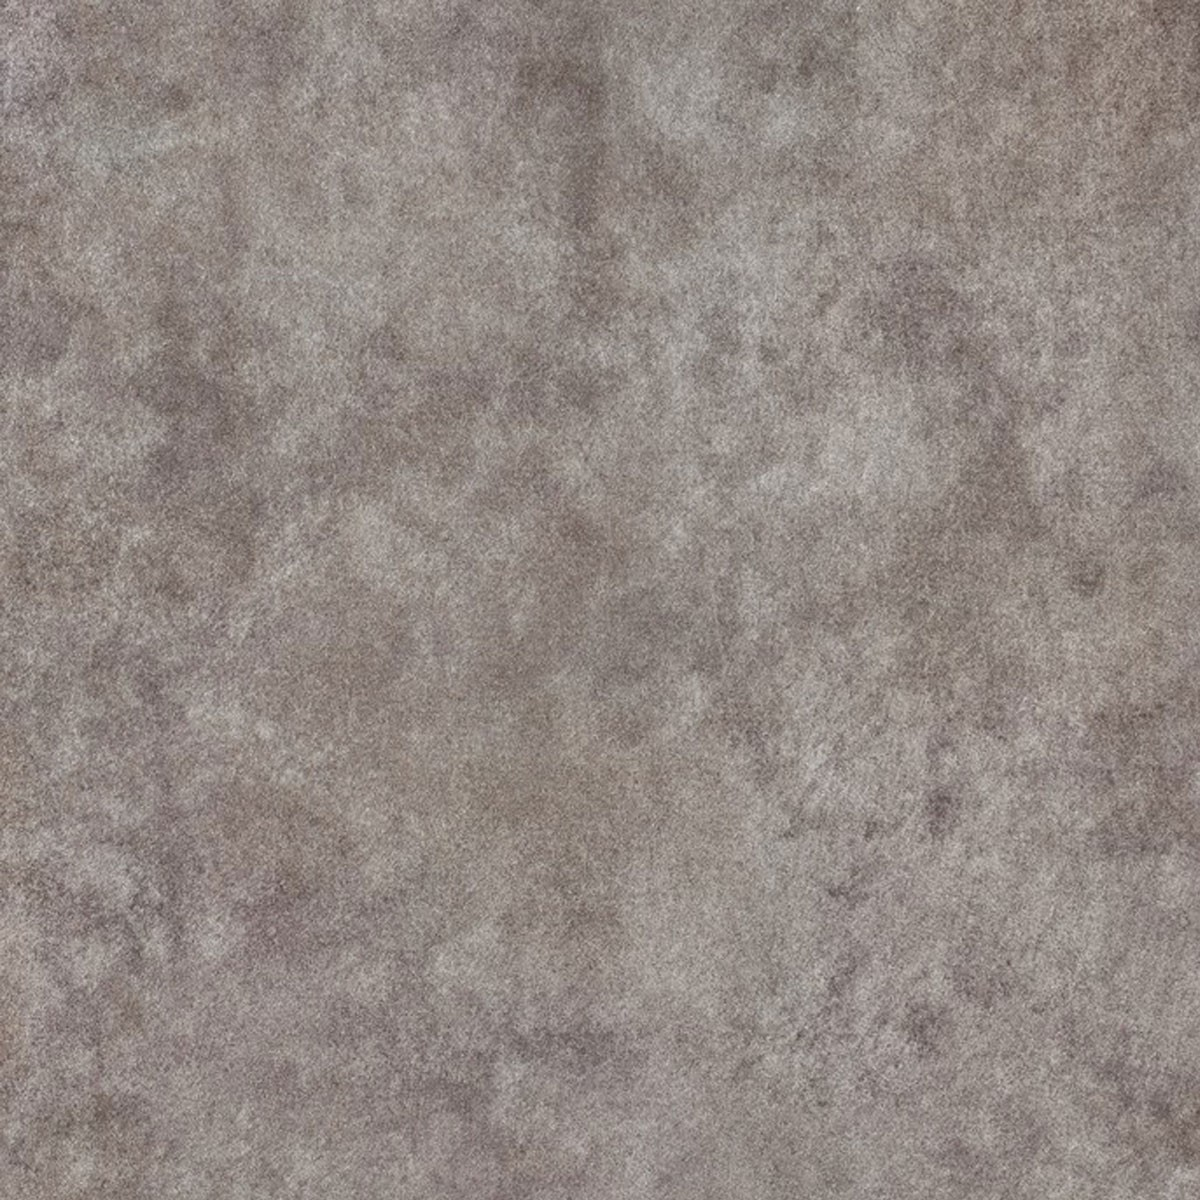 24 x 24 In. Brown Porcelain Floor Tile - 4 Pcs/Case (15.50 sq.ft/Case) (GN60C-1)